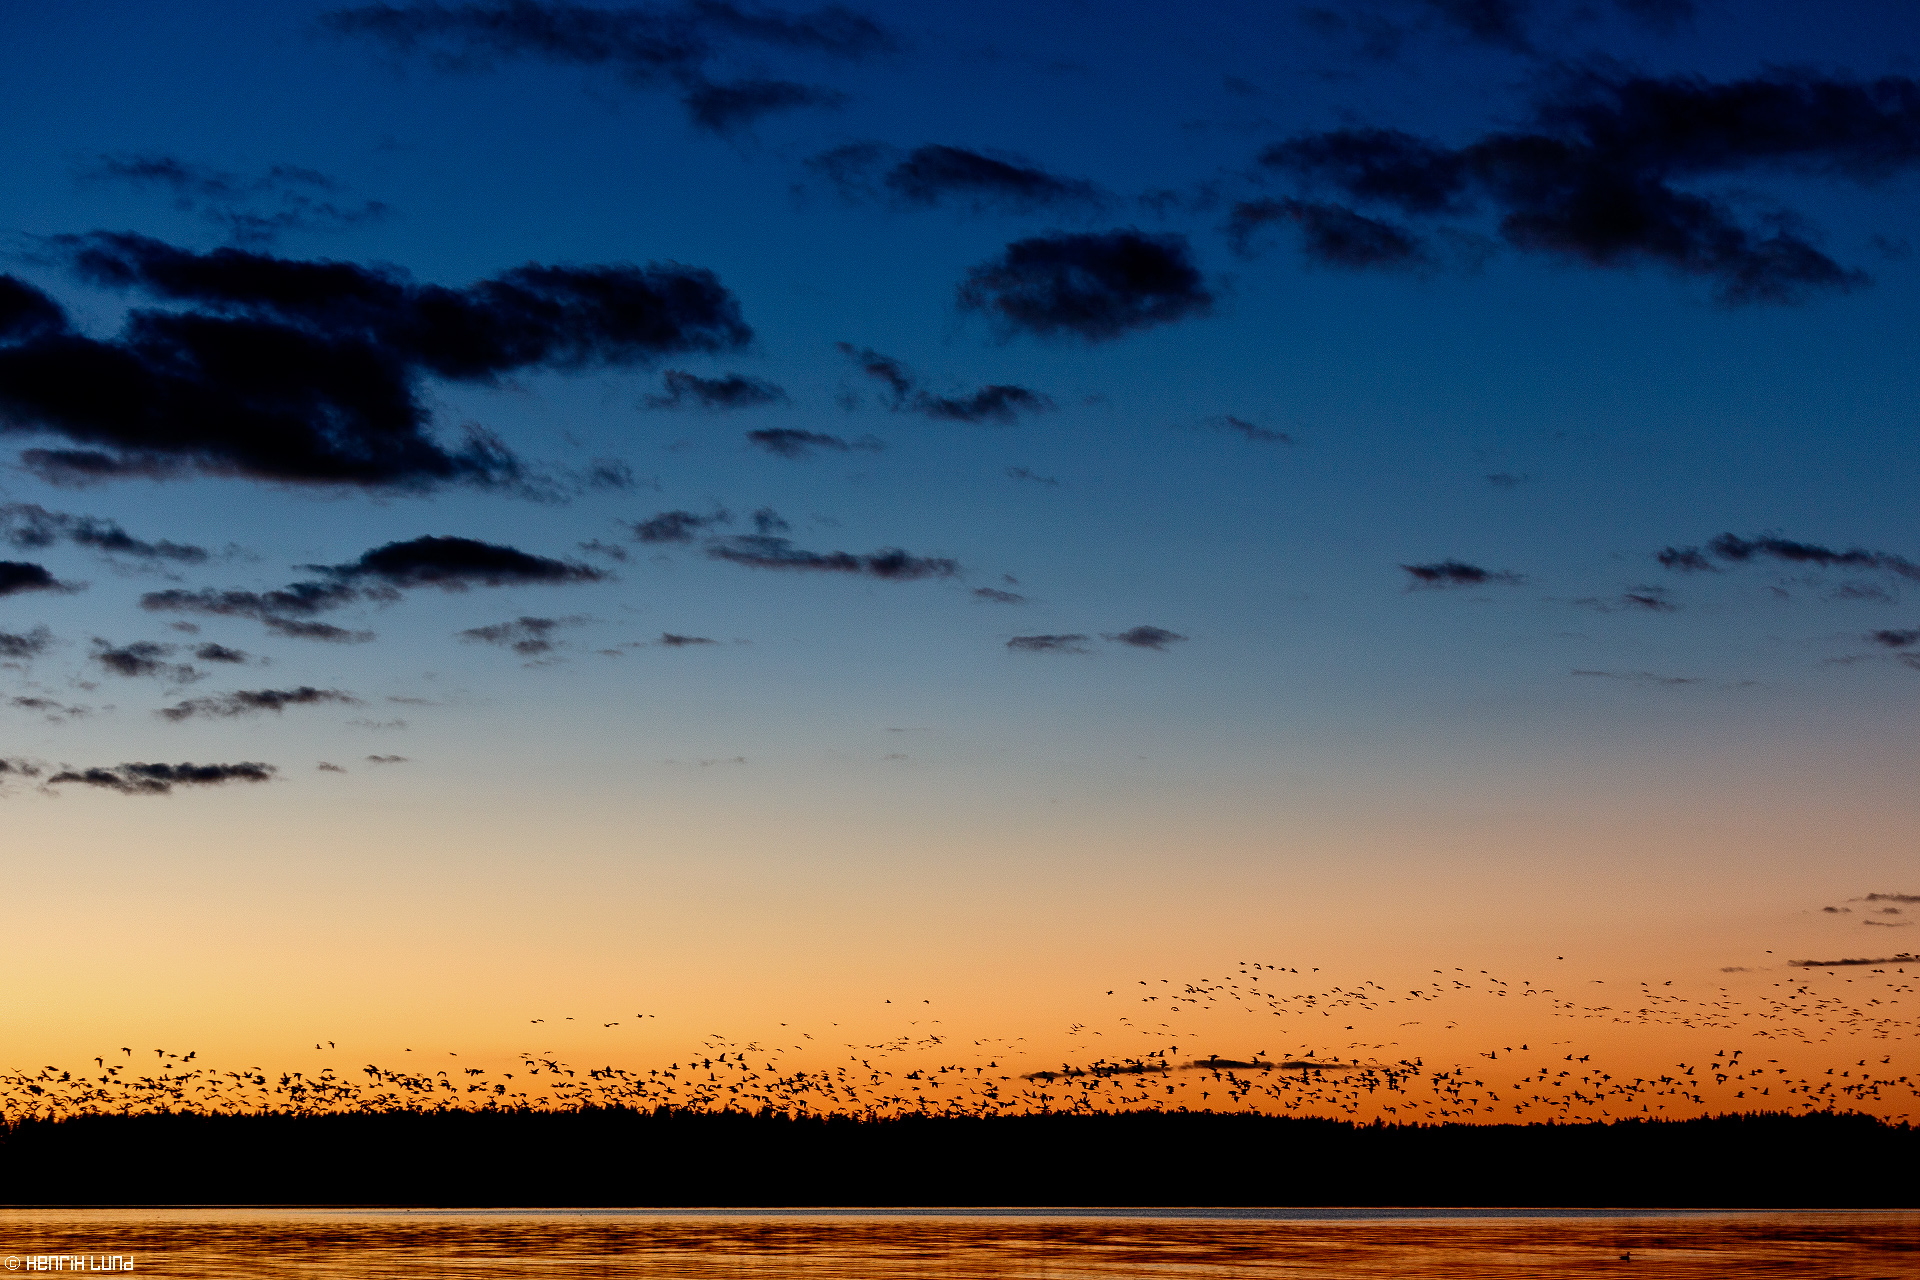 Migrating geese landing in the sunset for a break in lake Lappträsk. Finland, Septmeber 2015.